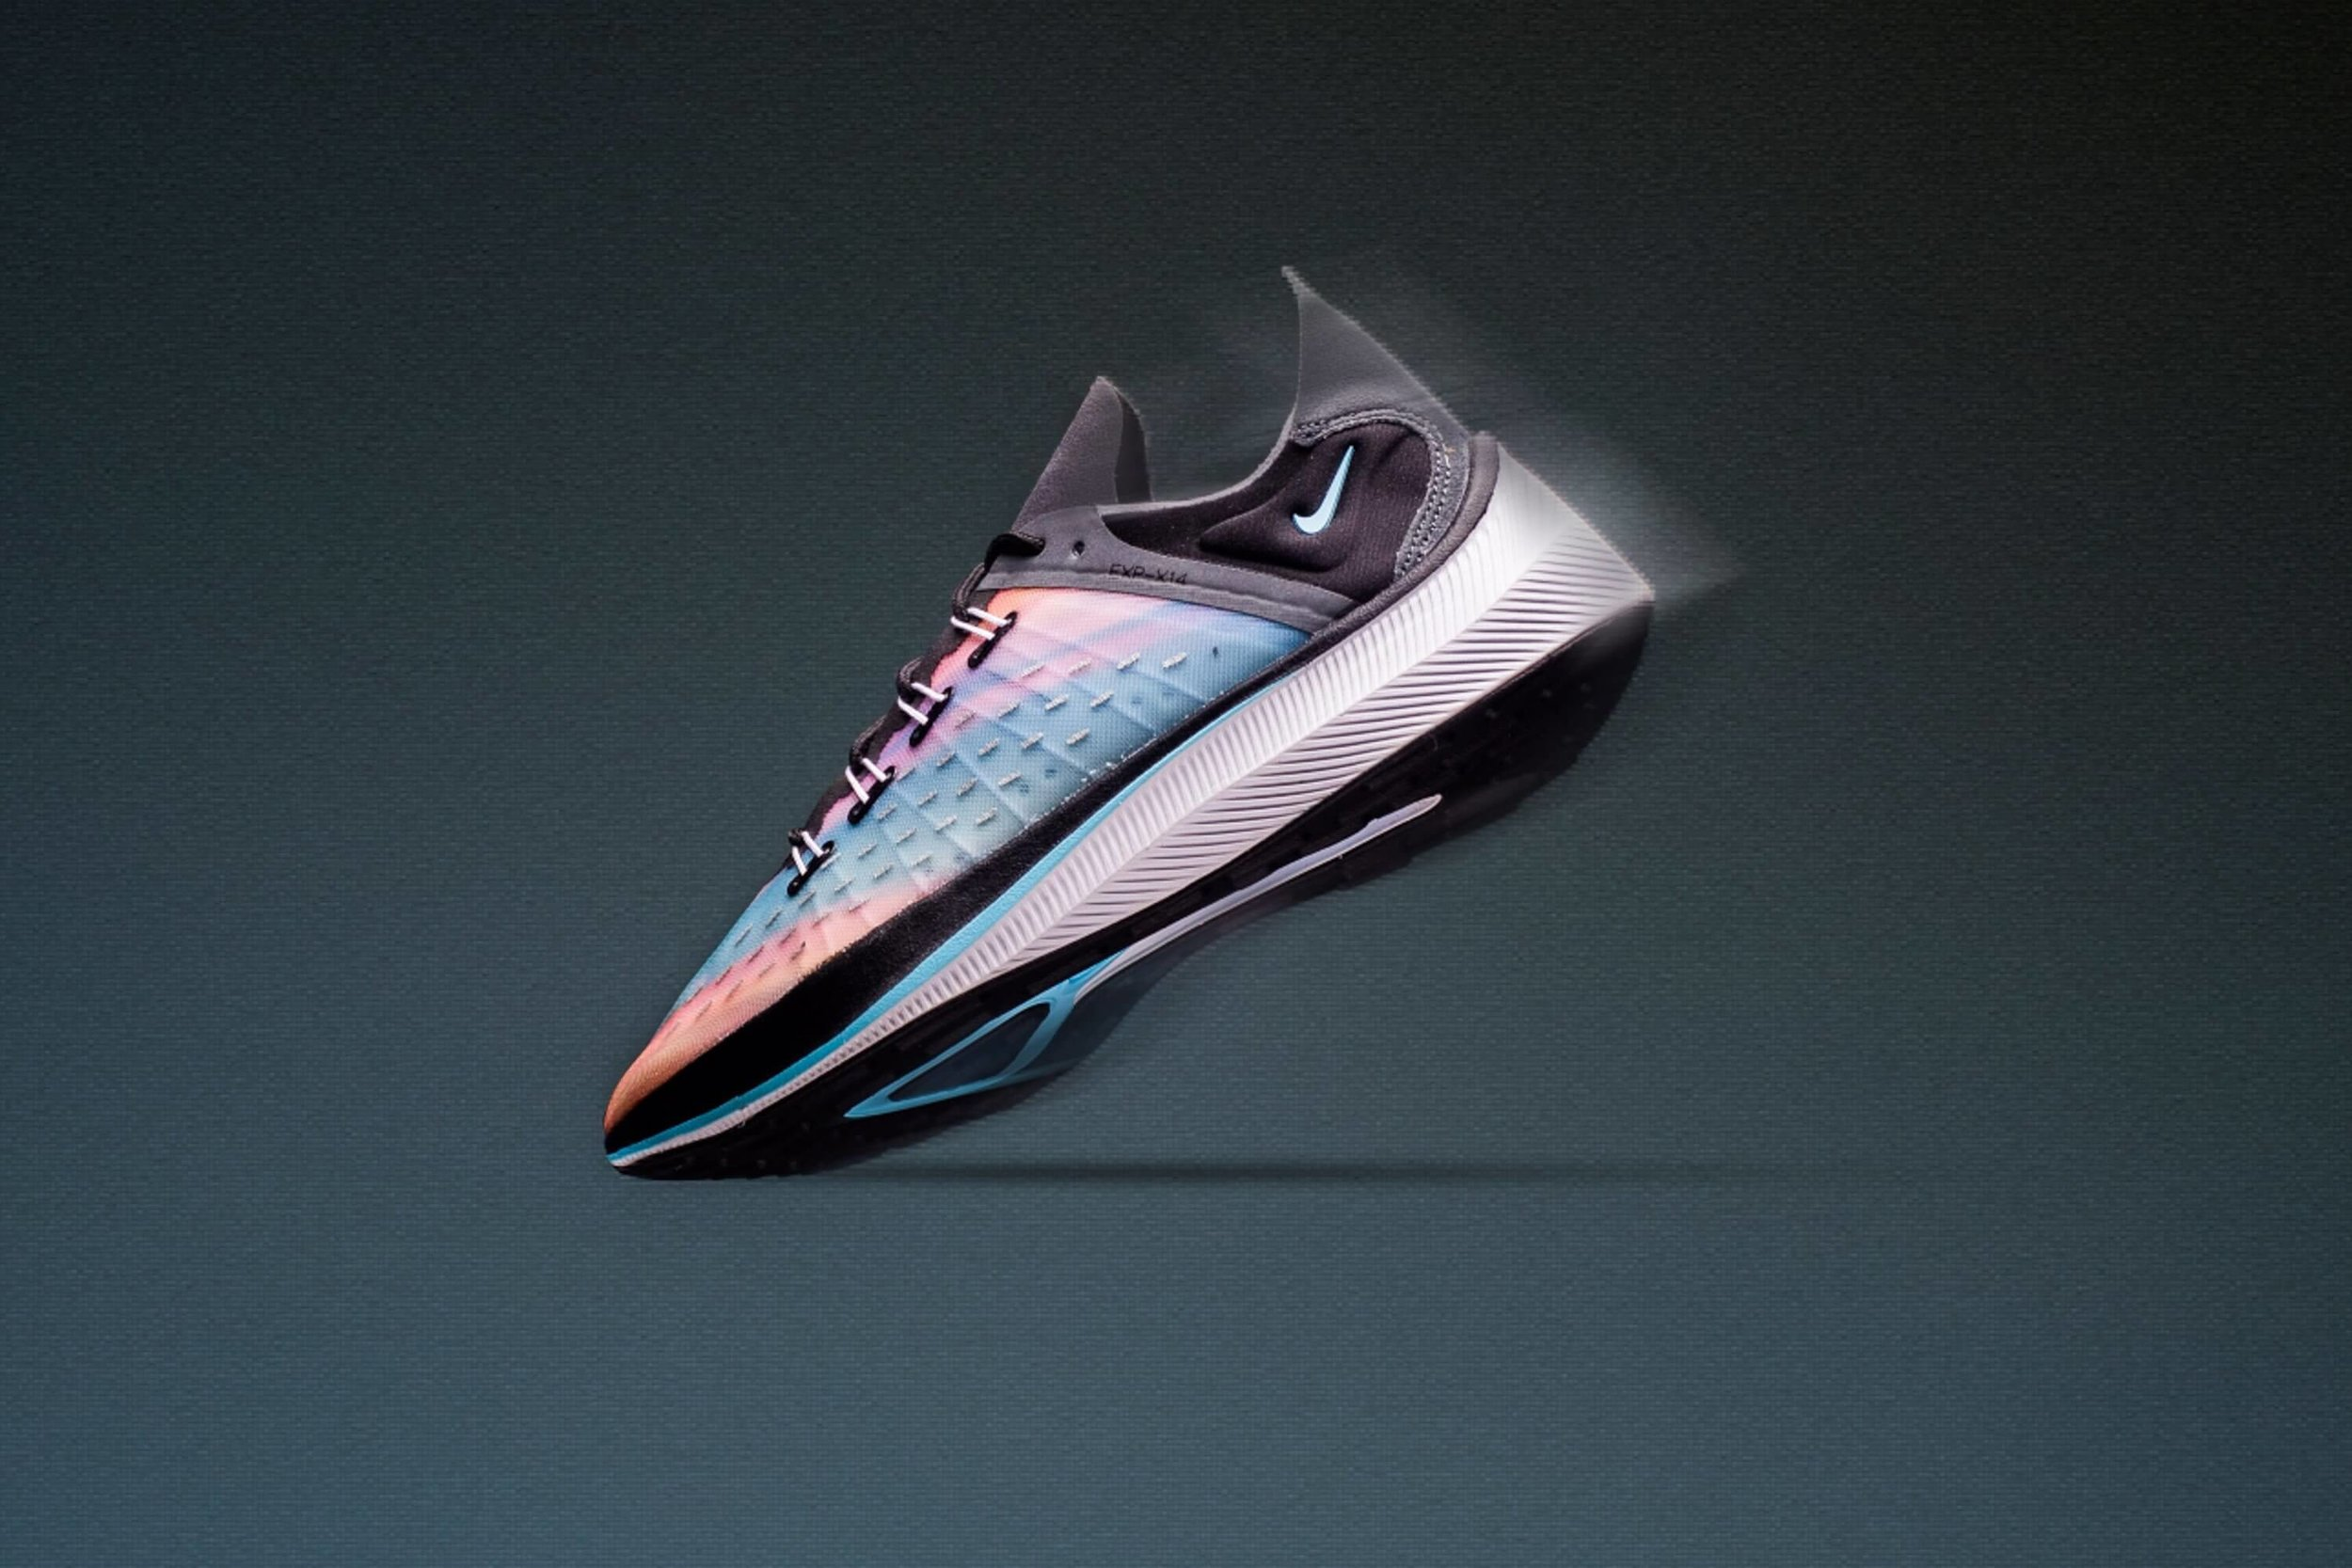 Nike_EXP-X14_Quick_Strike_BQ6972-001_sneaker_politics_Final4.jpg